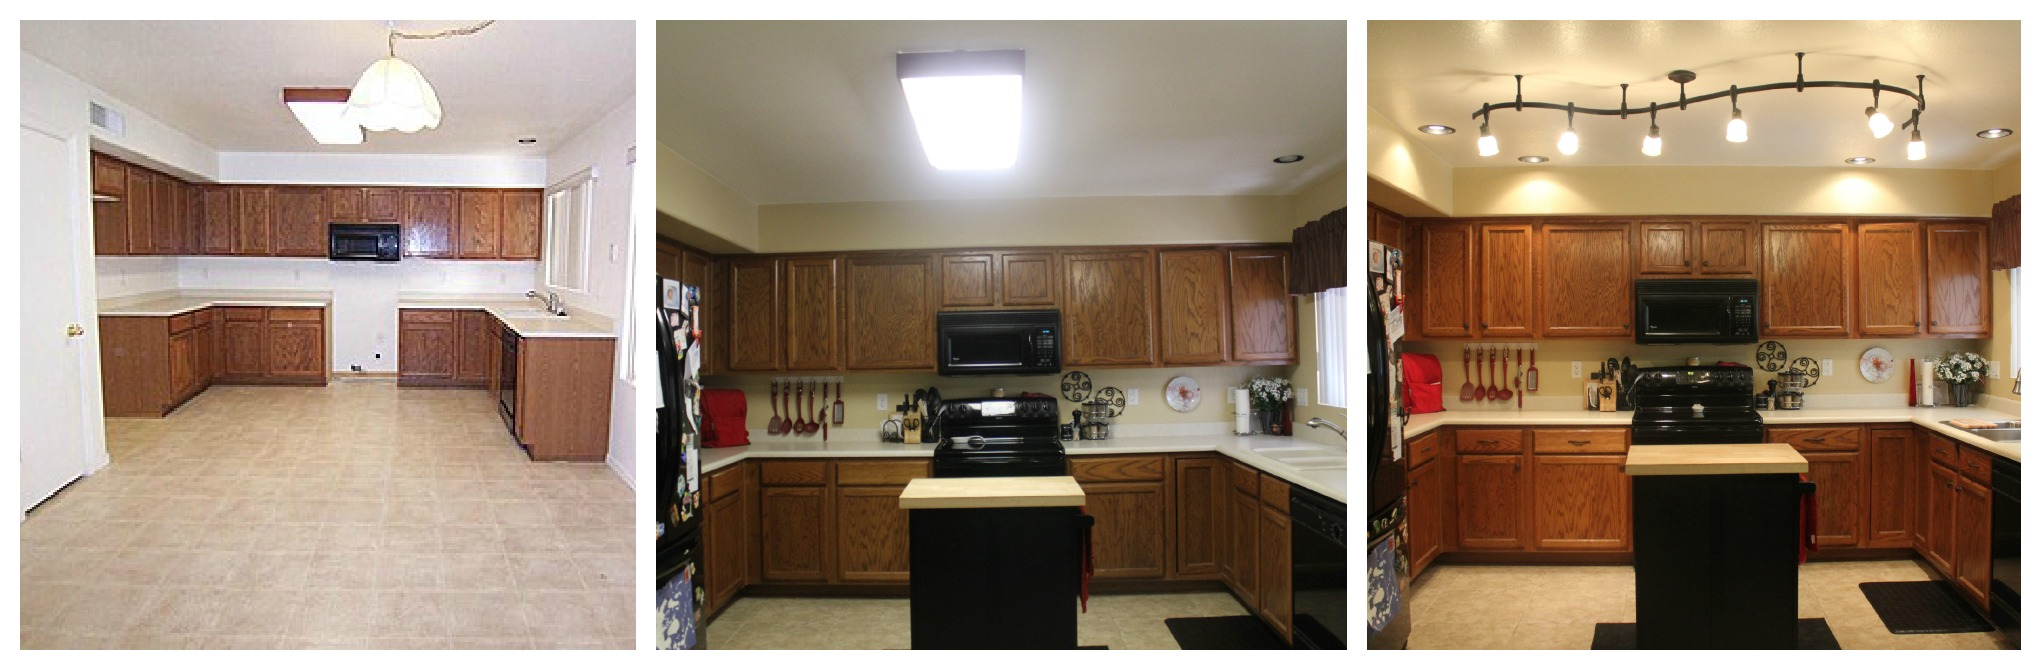 mini kitchen remodel fluorescent kitchen lighting So